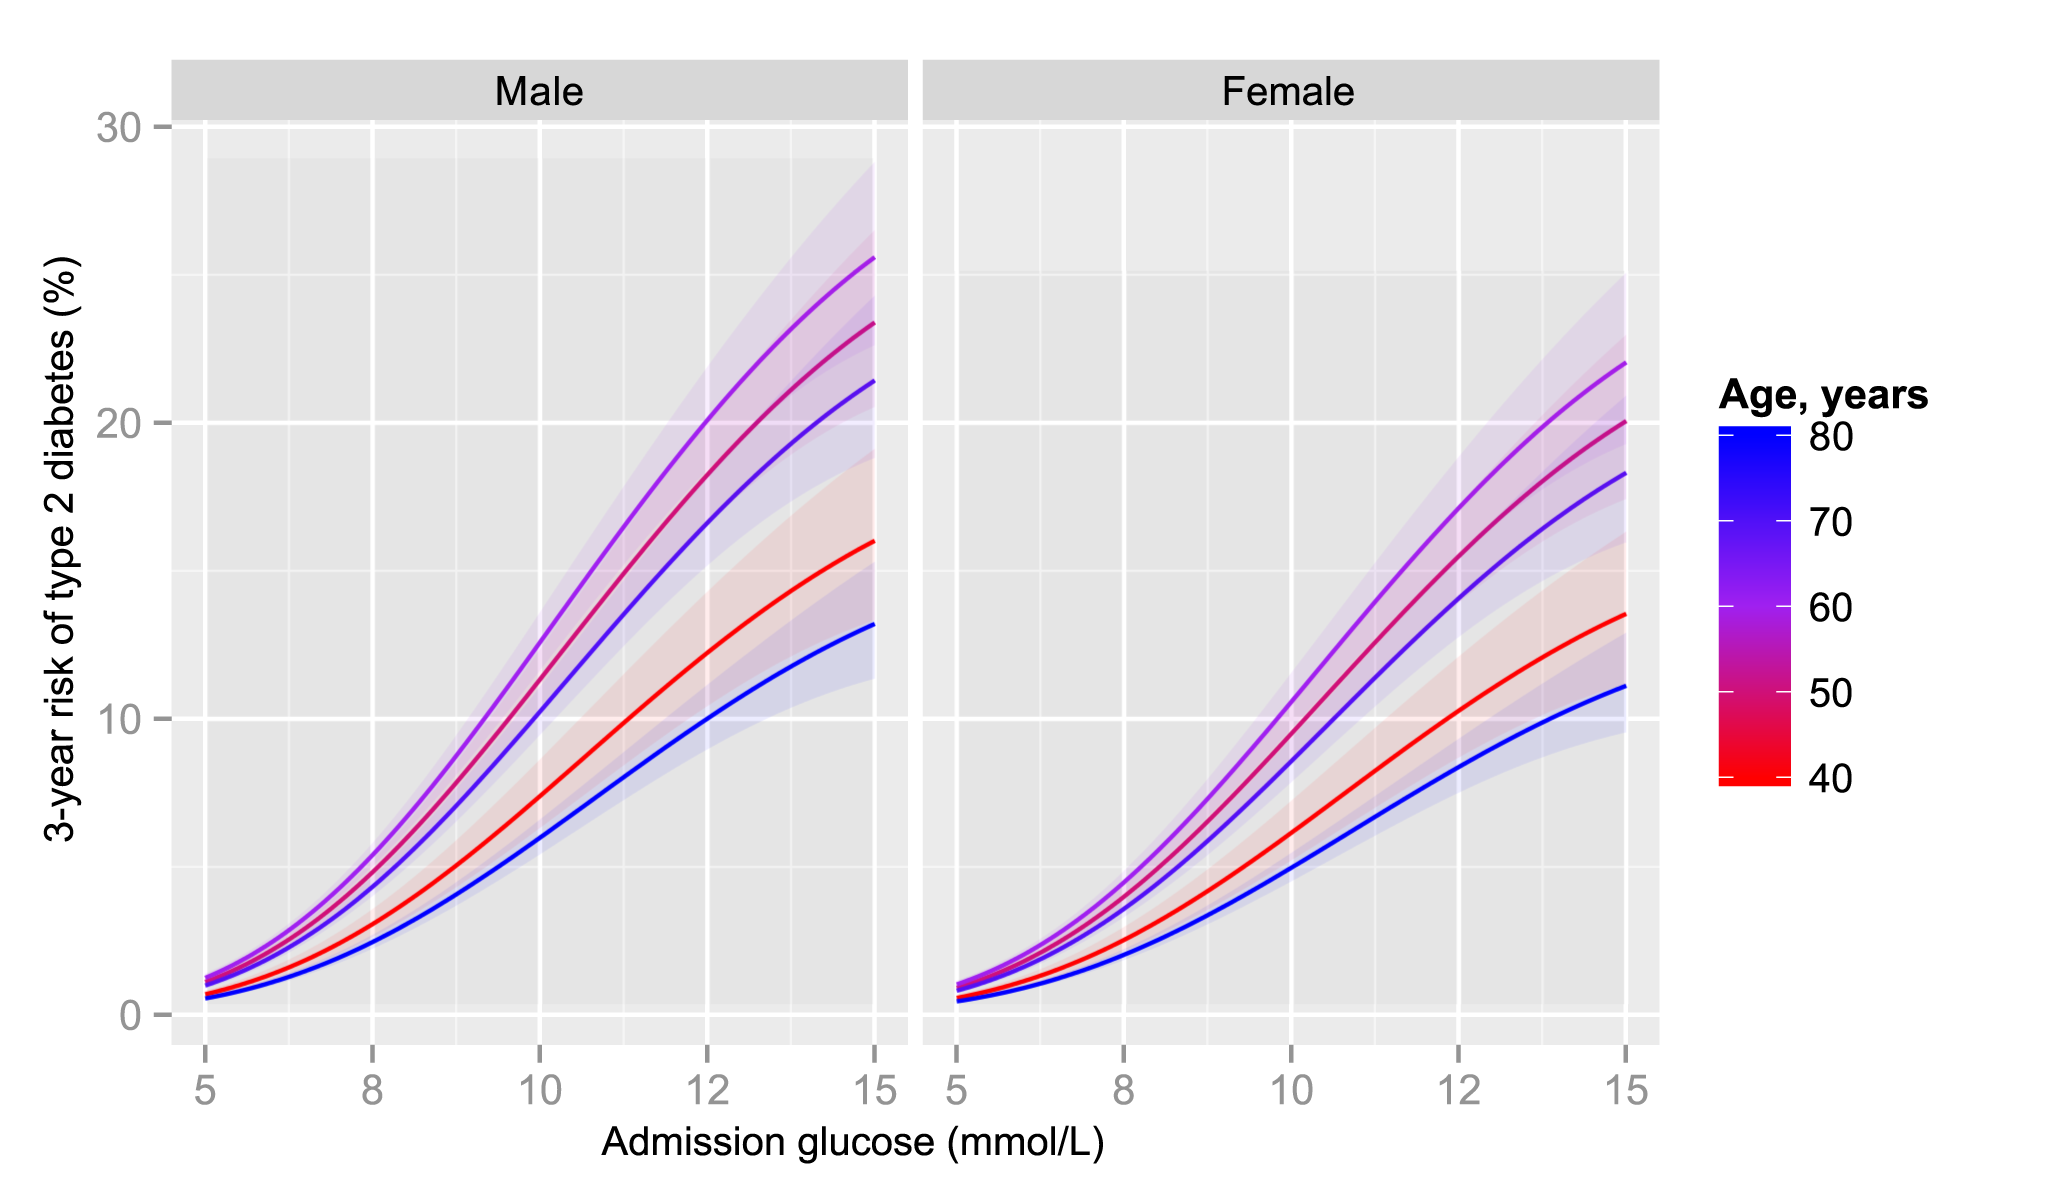 3-year risk of type 2 diabetes by admission glucose, age, and sex.